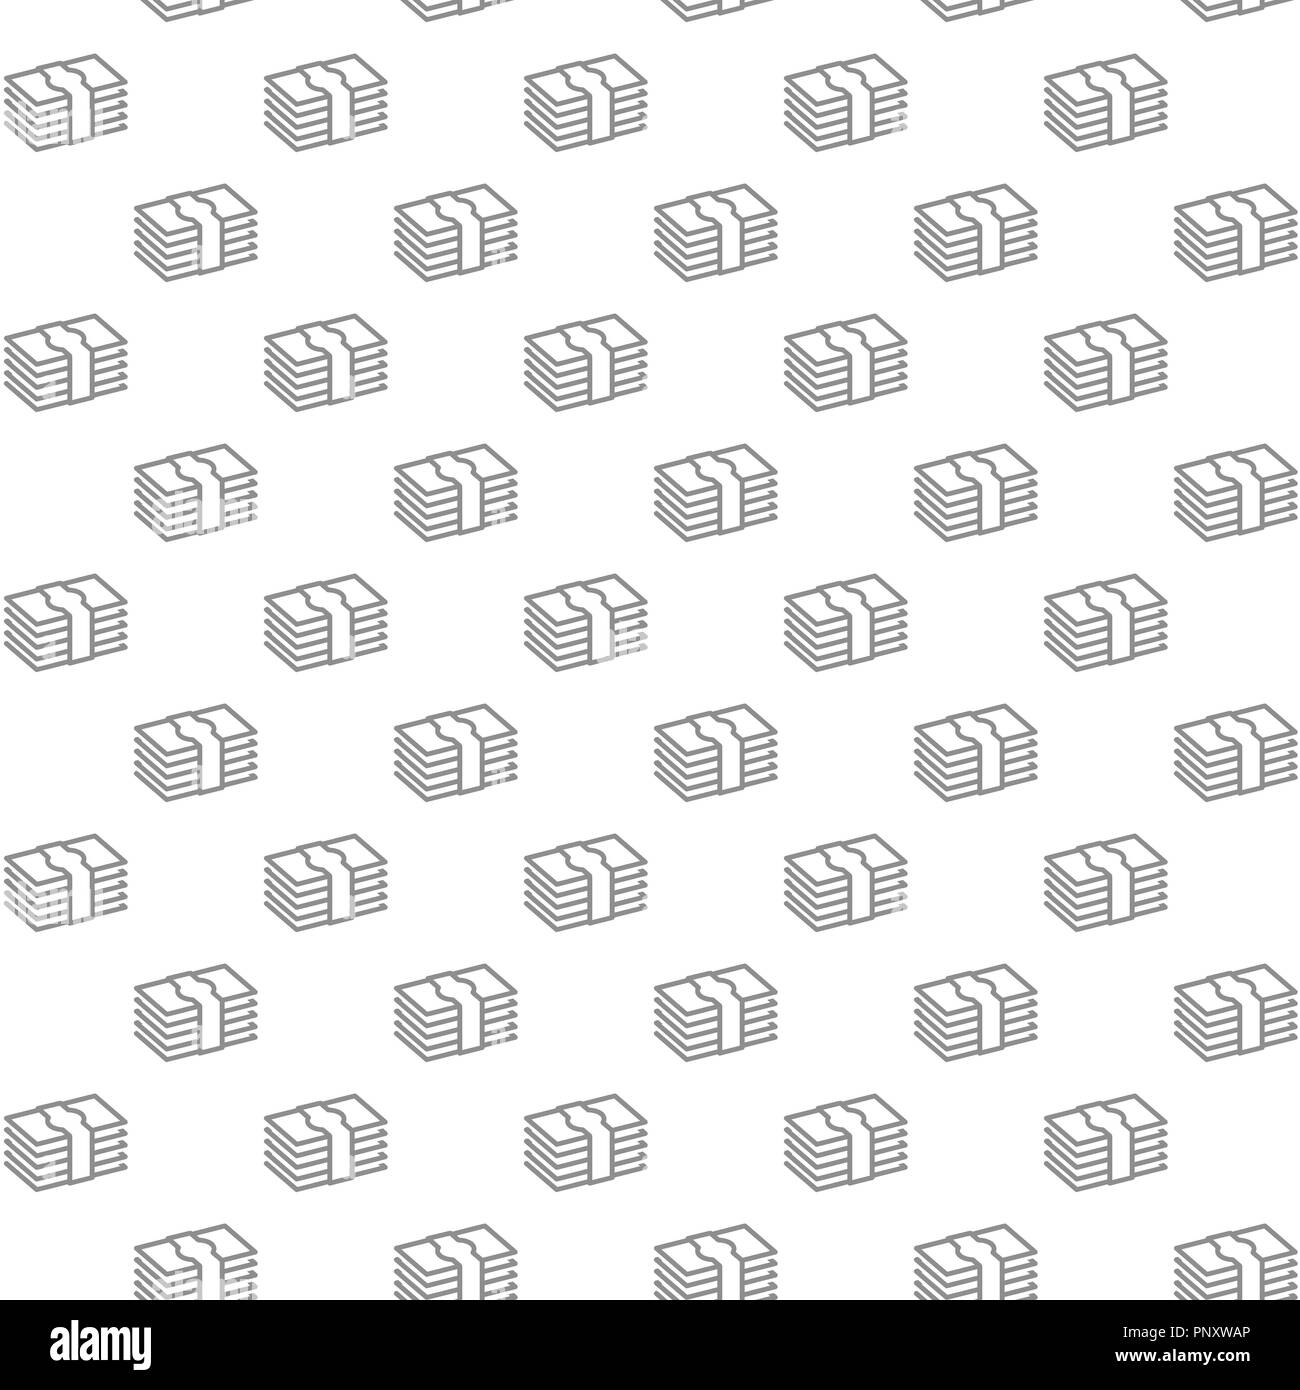 Unique Digital Money Cash Currency Dollars Seamless Pattern With